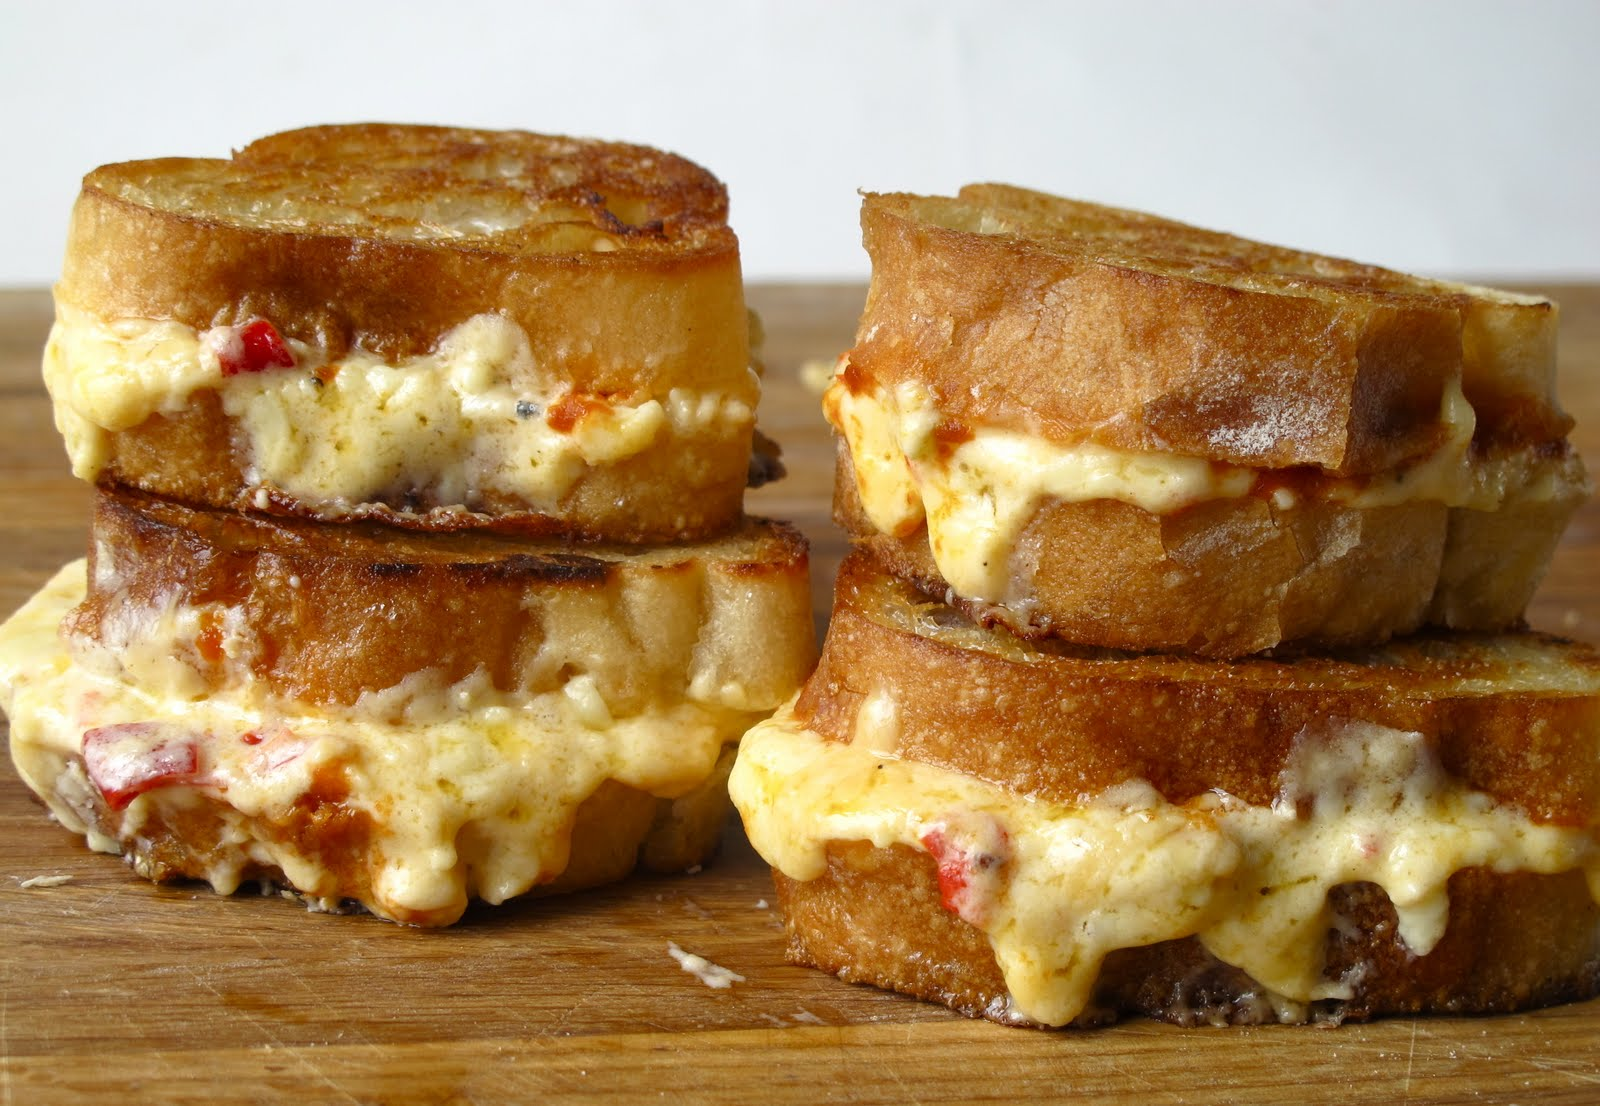 ... Bit - Pimento Cheese Grilled Cheese Sliders - Grilled Cheese Social